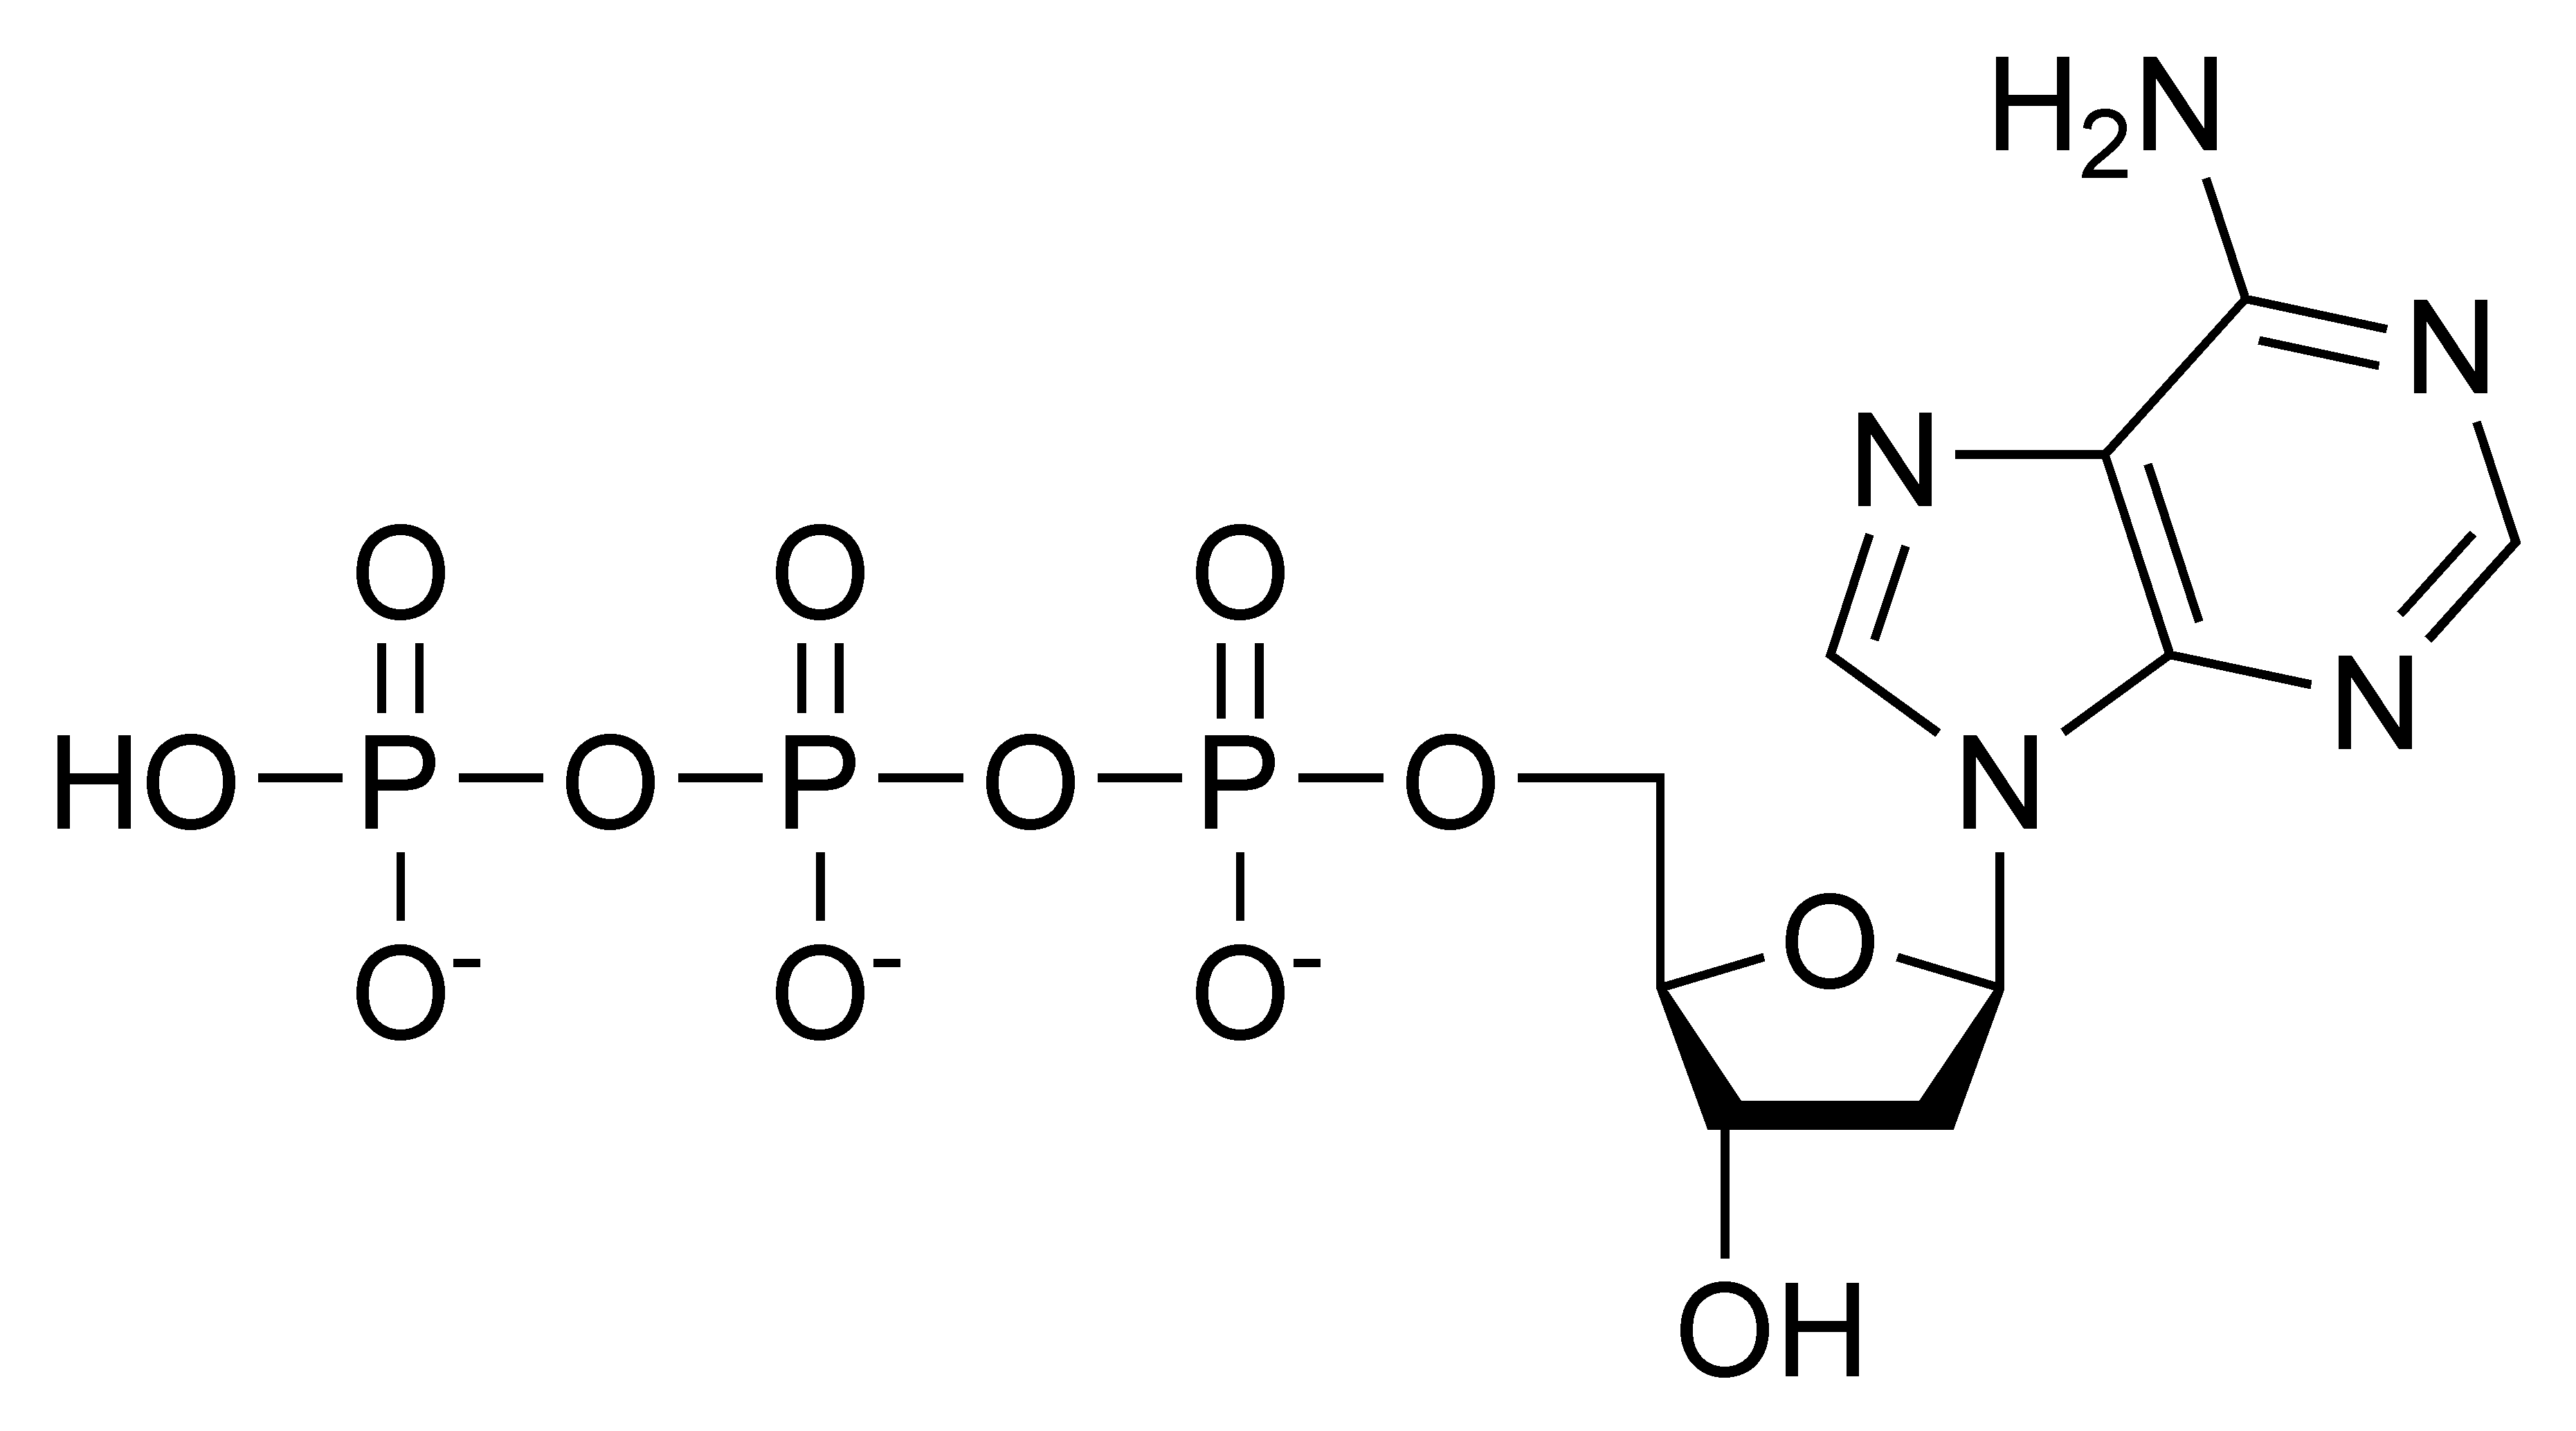 Chemical structure of deoxyadenosine triphosphate